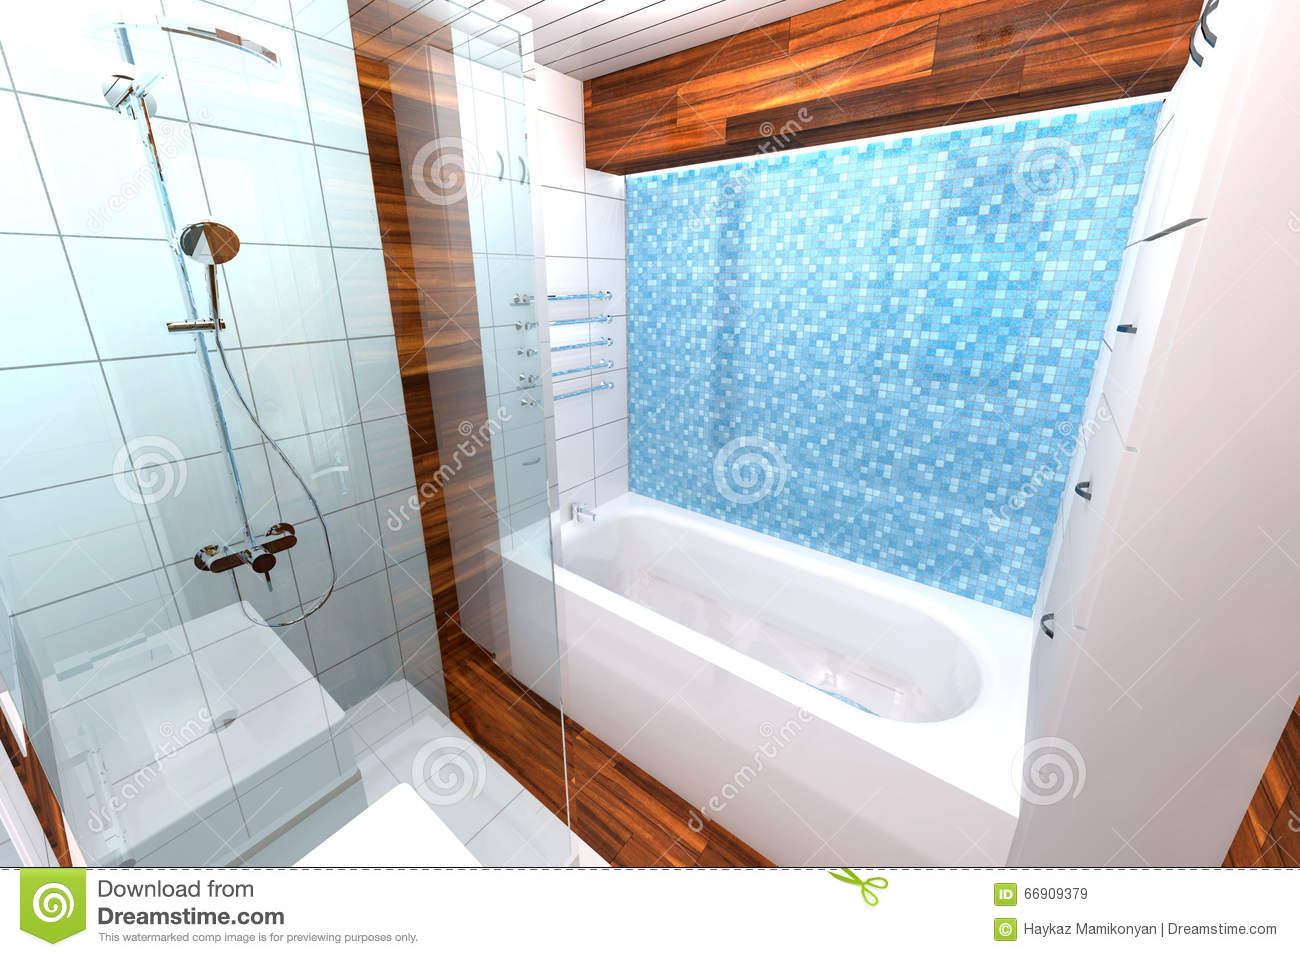 Bathroom Interior Design Stock Illustration Image Of Adobe 66909379